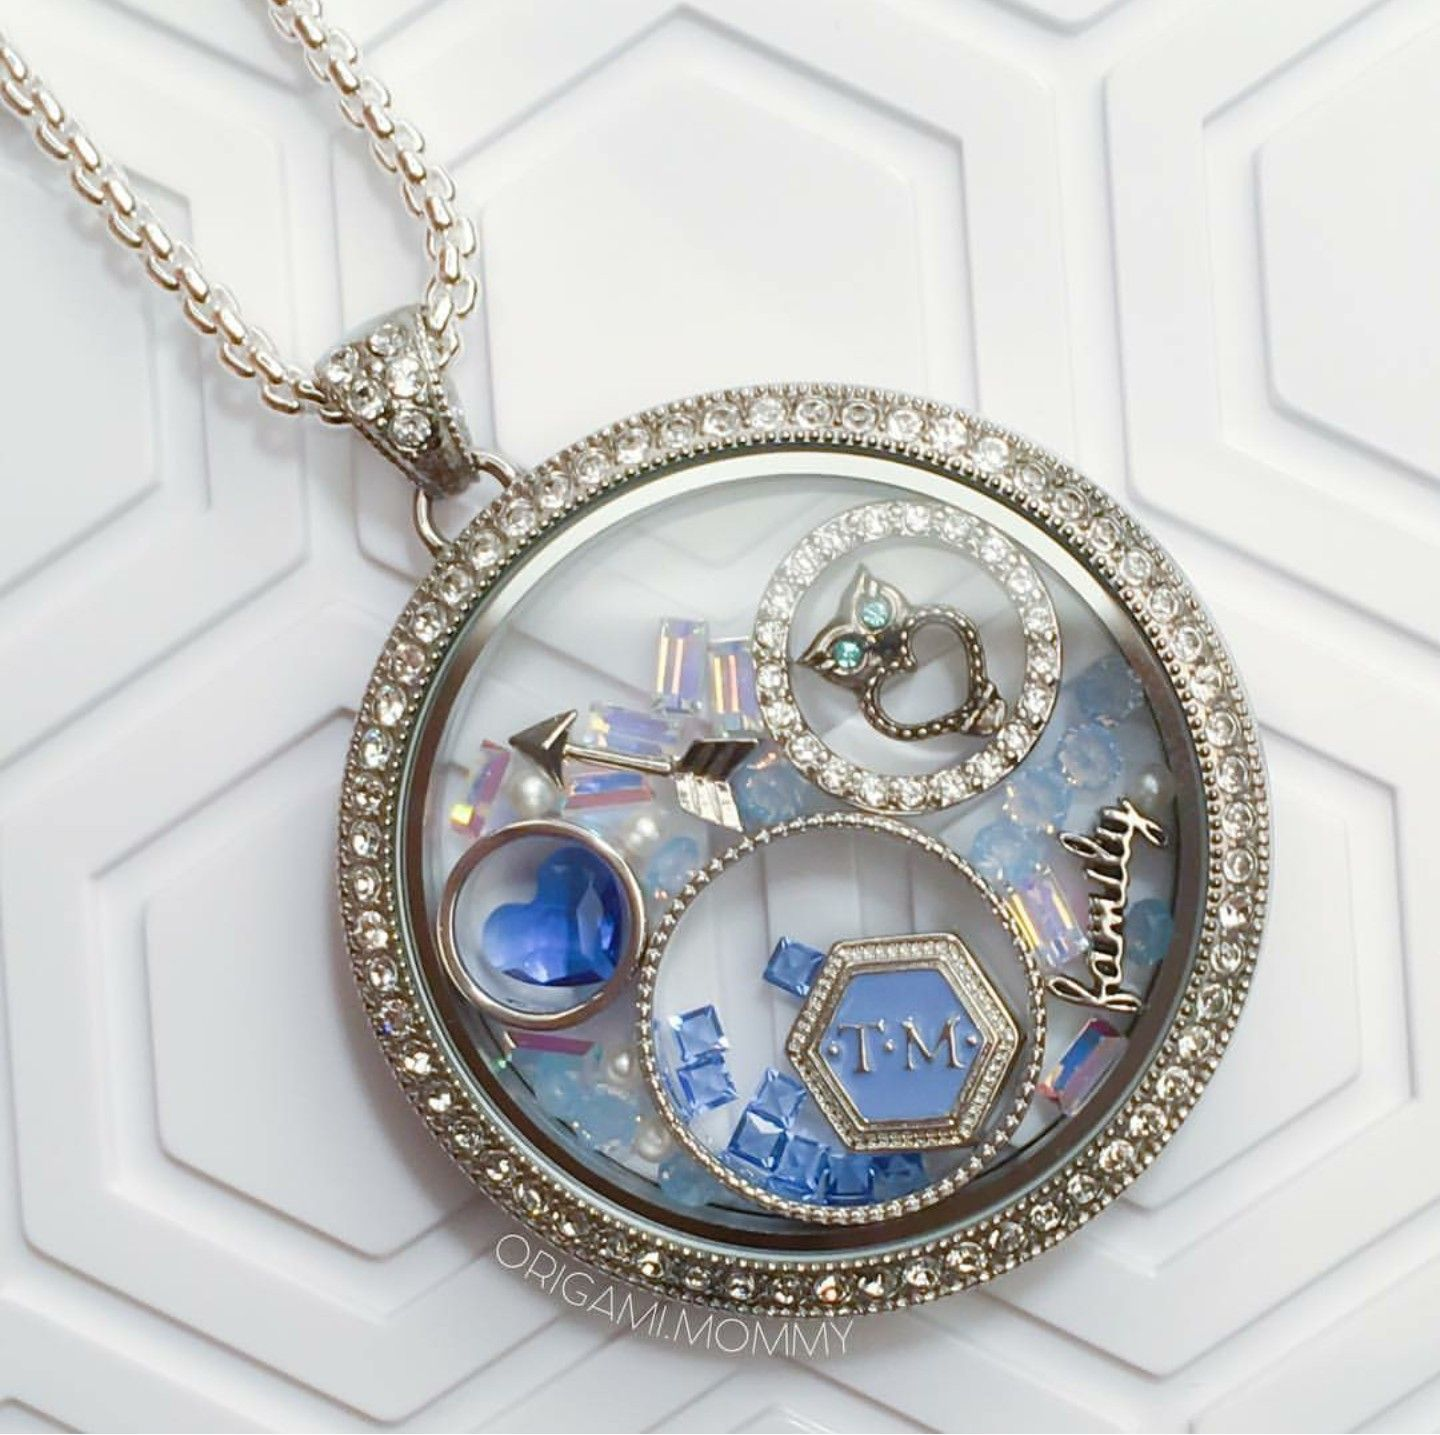 by to key necklace p watch steampunk sweet antique lockets ol romance and htm pocket